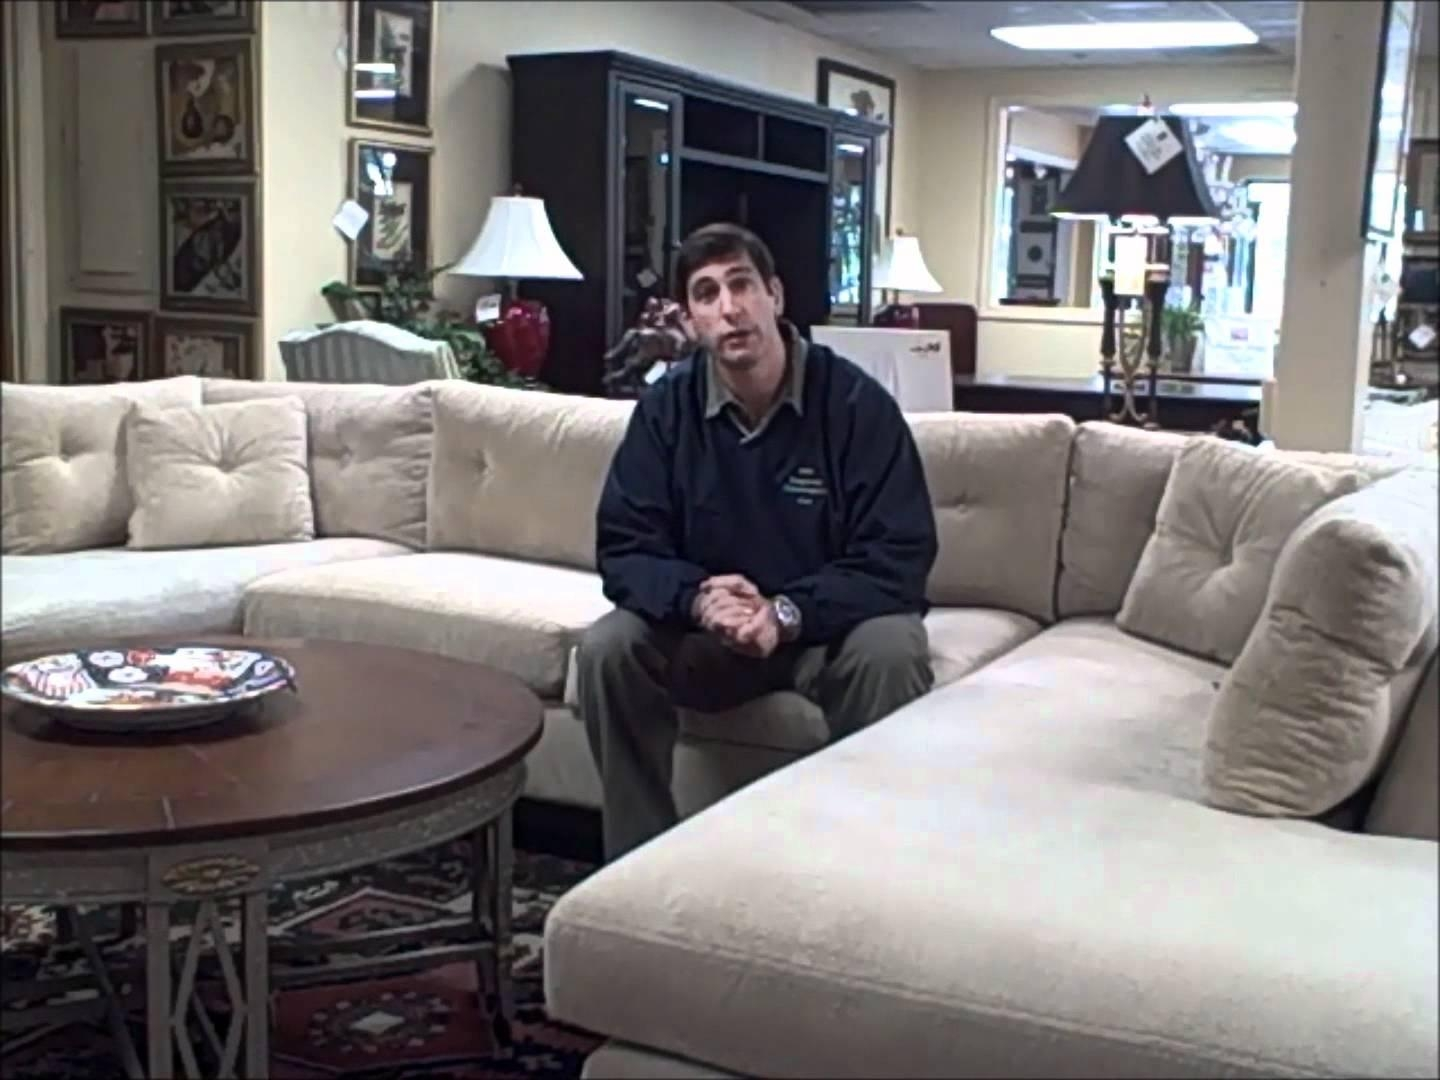 Arhaus Sectional Sofas And Sleeper Are Our Deals Of The Week 10 7 Intended For Arhaus Club Sofas (Image 16 of 20)